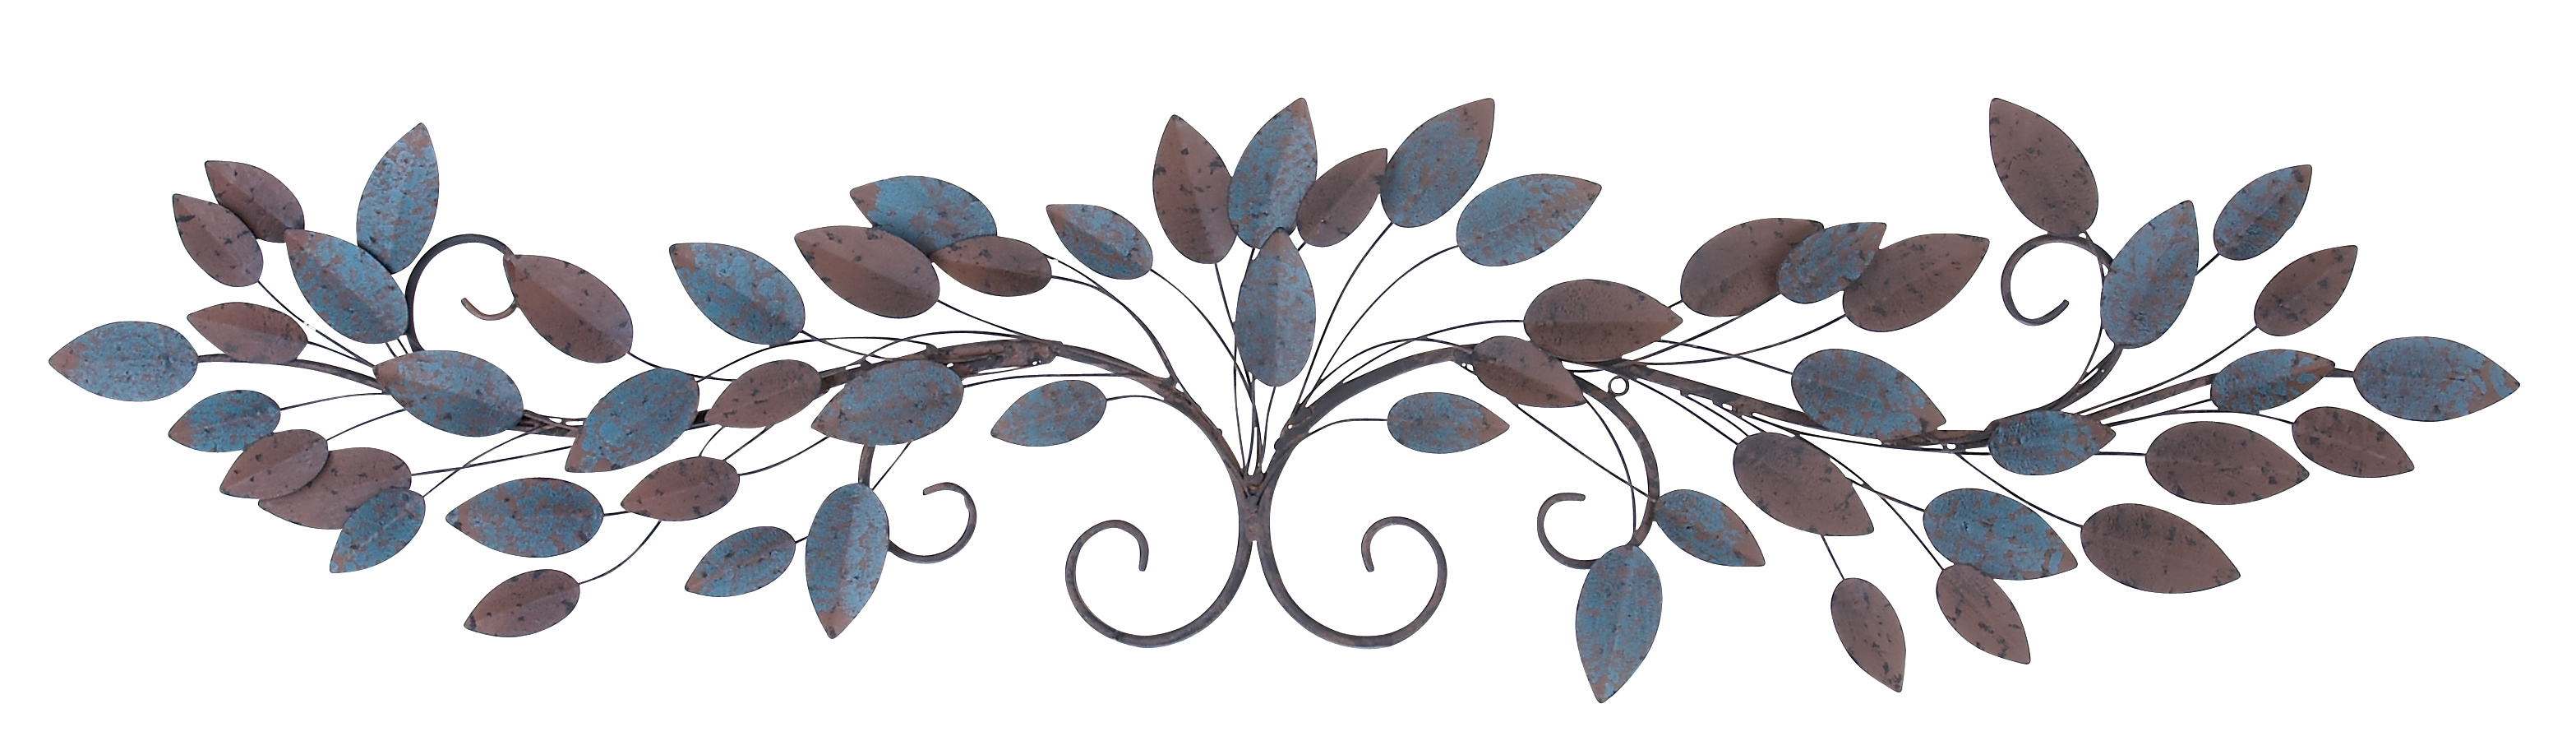 Decmode Natural 12 x 51 Inch Metal Wire and Leaves Wall Sculpture by DecMode